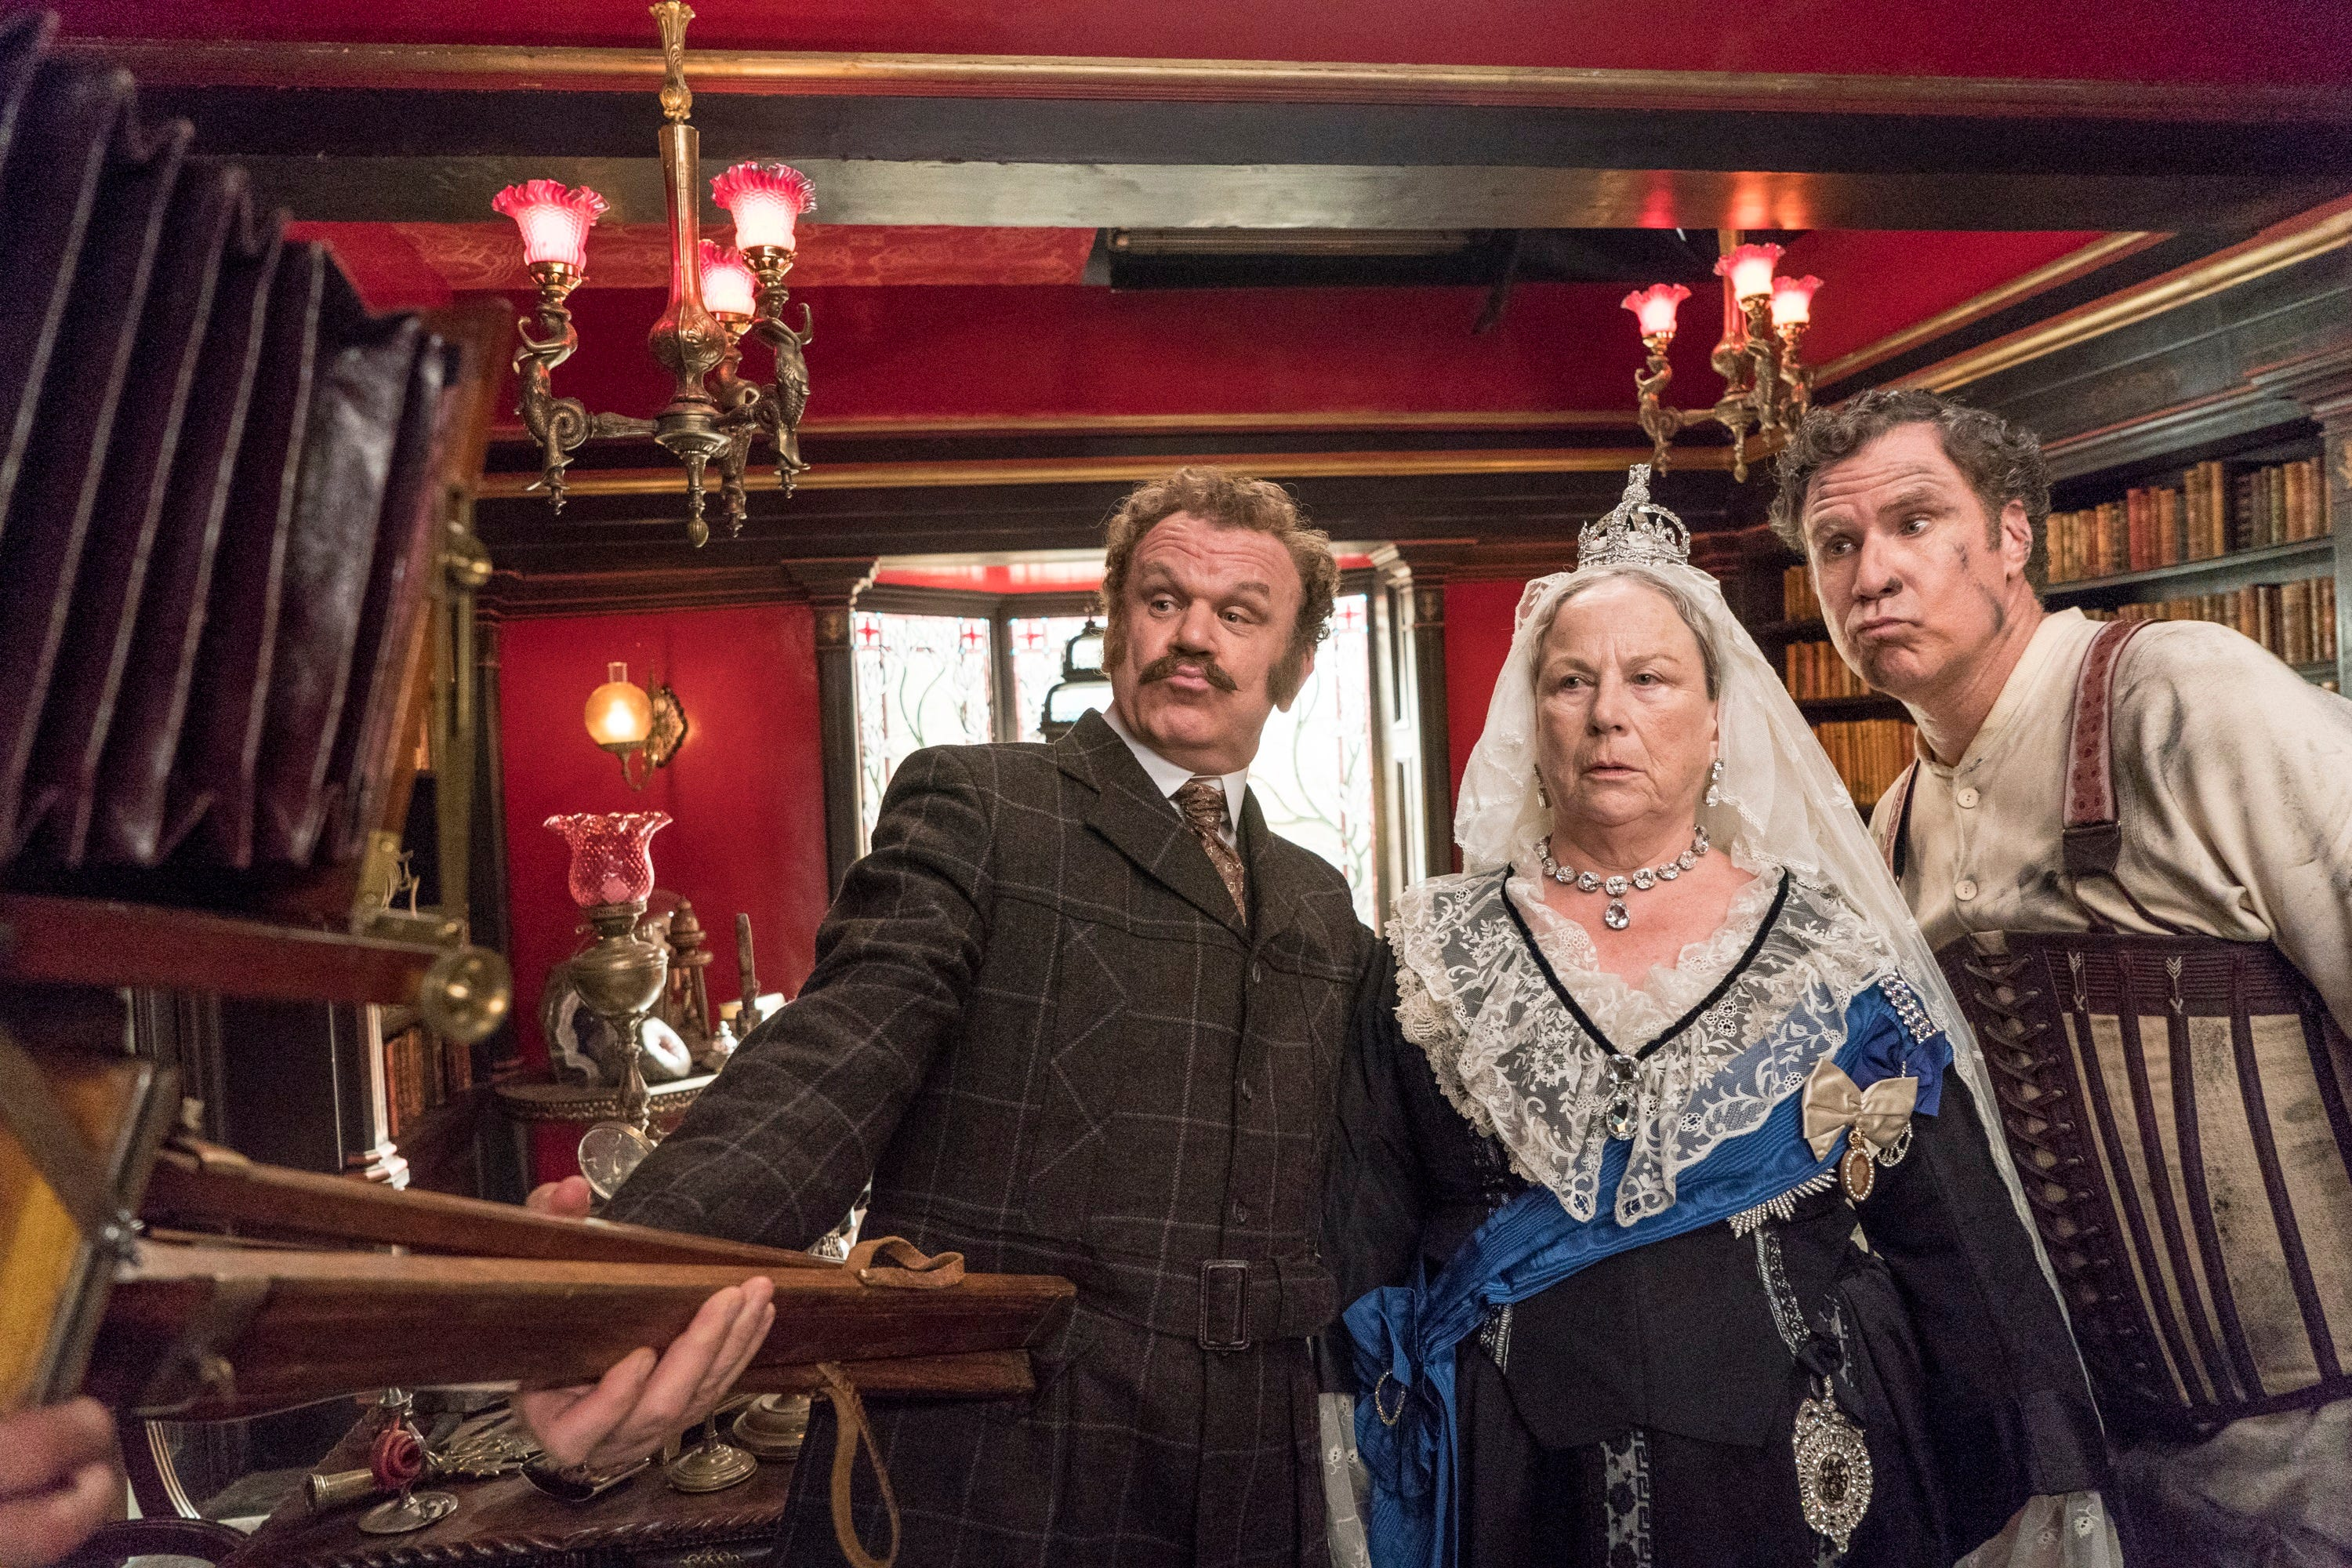 """Dr. John Watson (John C. Reilly, left) and Sherlock Homes (Will Ferrell, right) pose for a 19th-century selfie with Queen Victoria (Pam Ferris) in """"Holmes & Watson."""" No, really."""